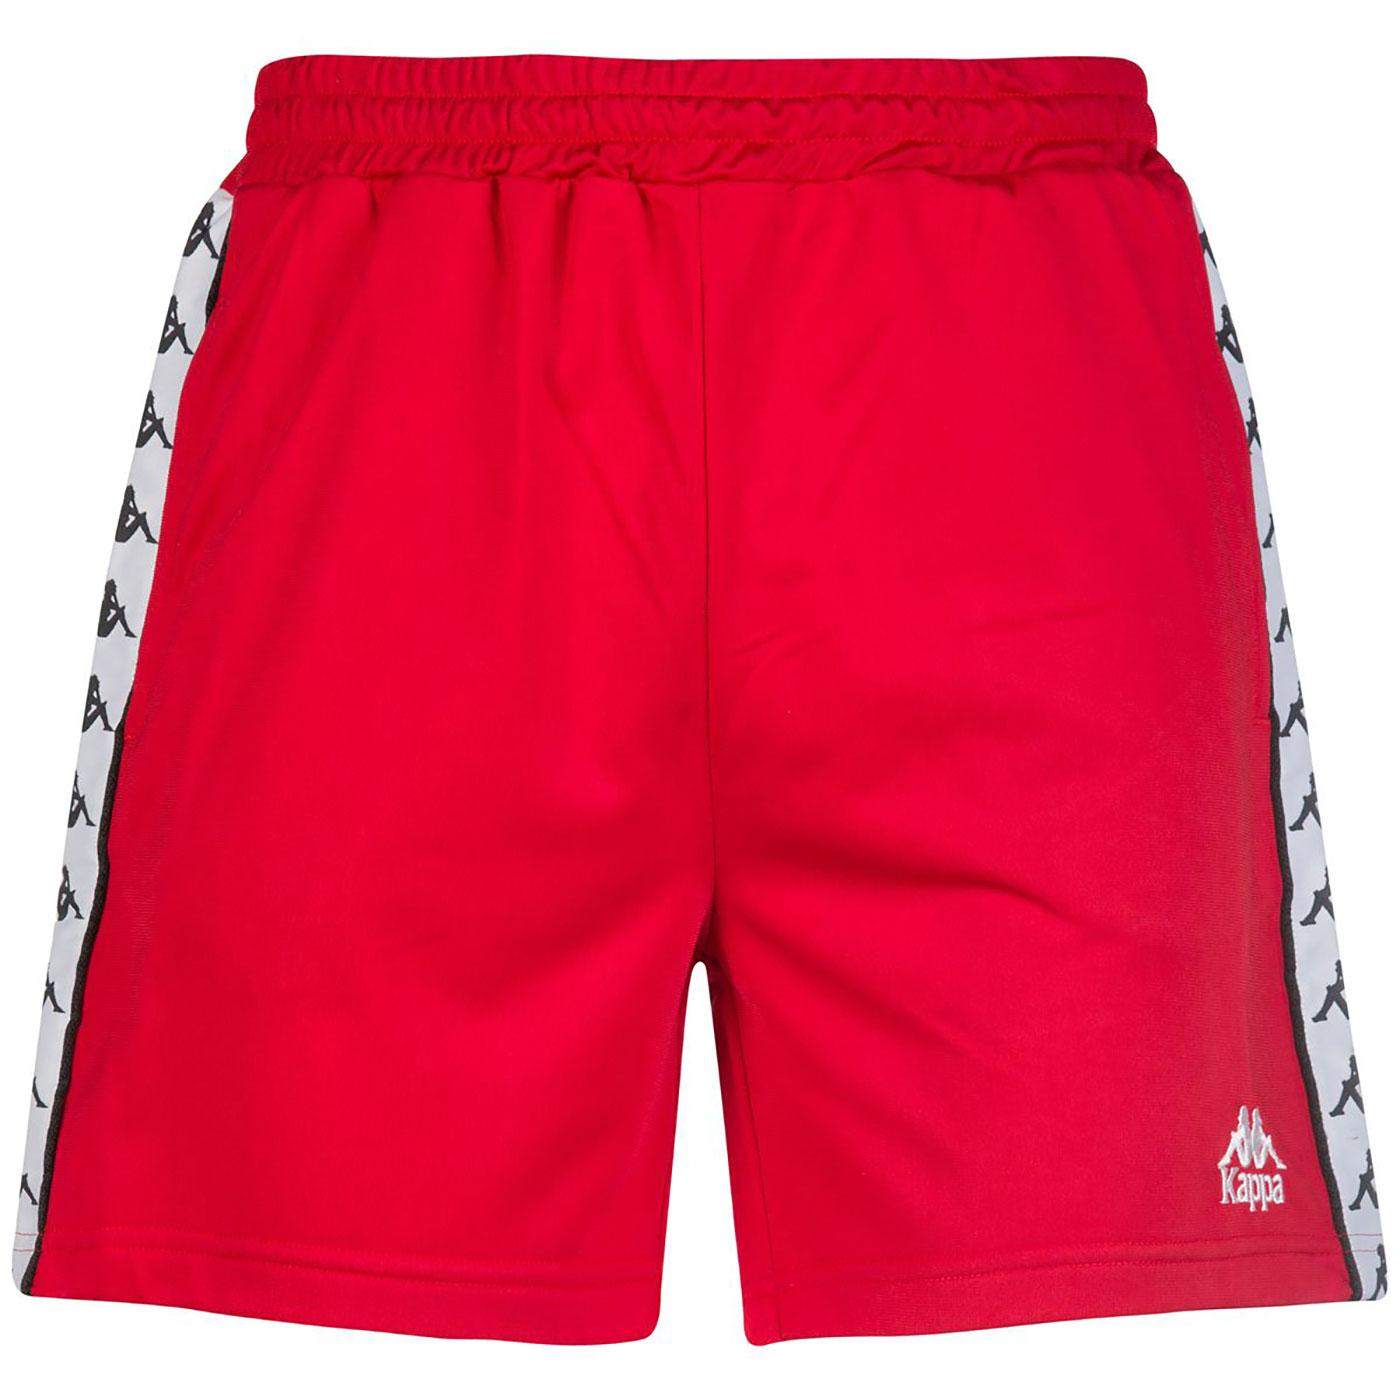 Cole KAPPA Men's Retro Seventies Football Shorts R